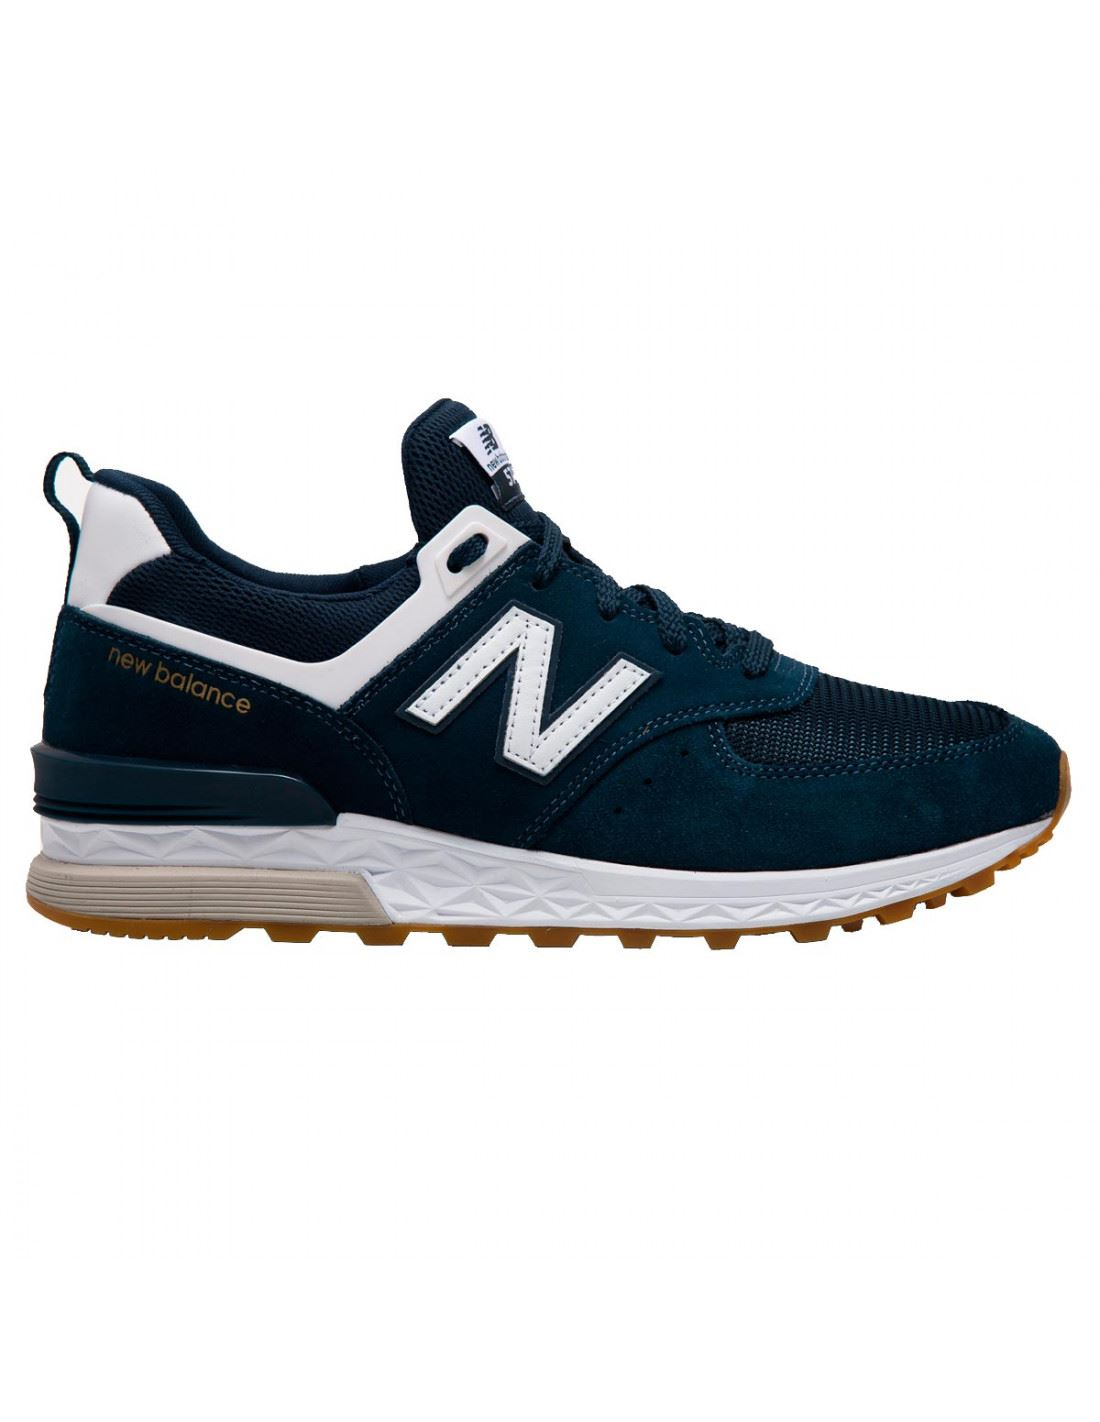 La selva amazónica Cíclope oportunidad  ᐈ Zapatillas New Balance 574 Sport Lifestyle – Black Atmosfera©